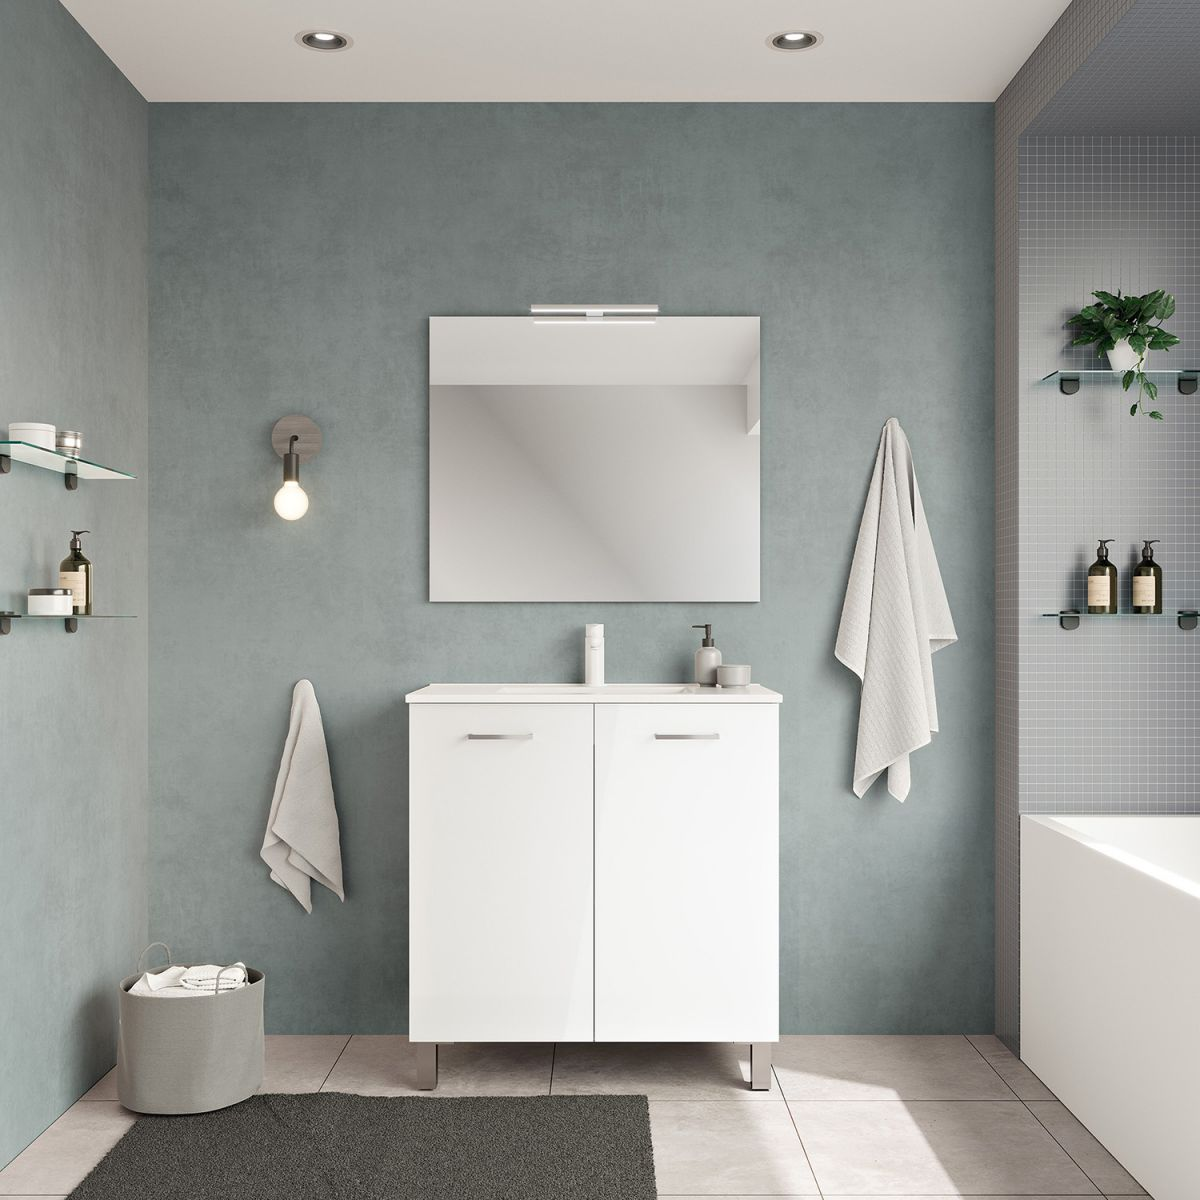 /wp/wp-content/uploads/2020/02/ws-bath-collections-logic-120-free-standing-bathroom-vanity-with-mirror-2.jpg